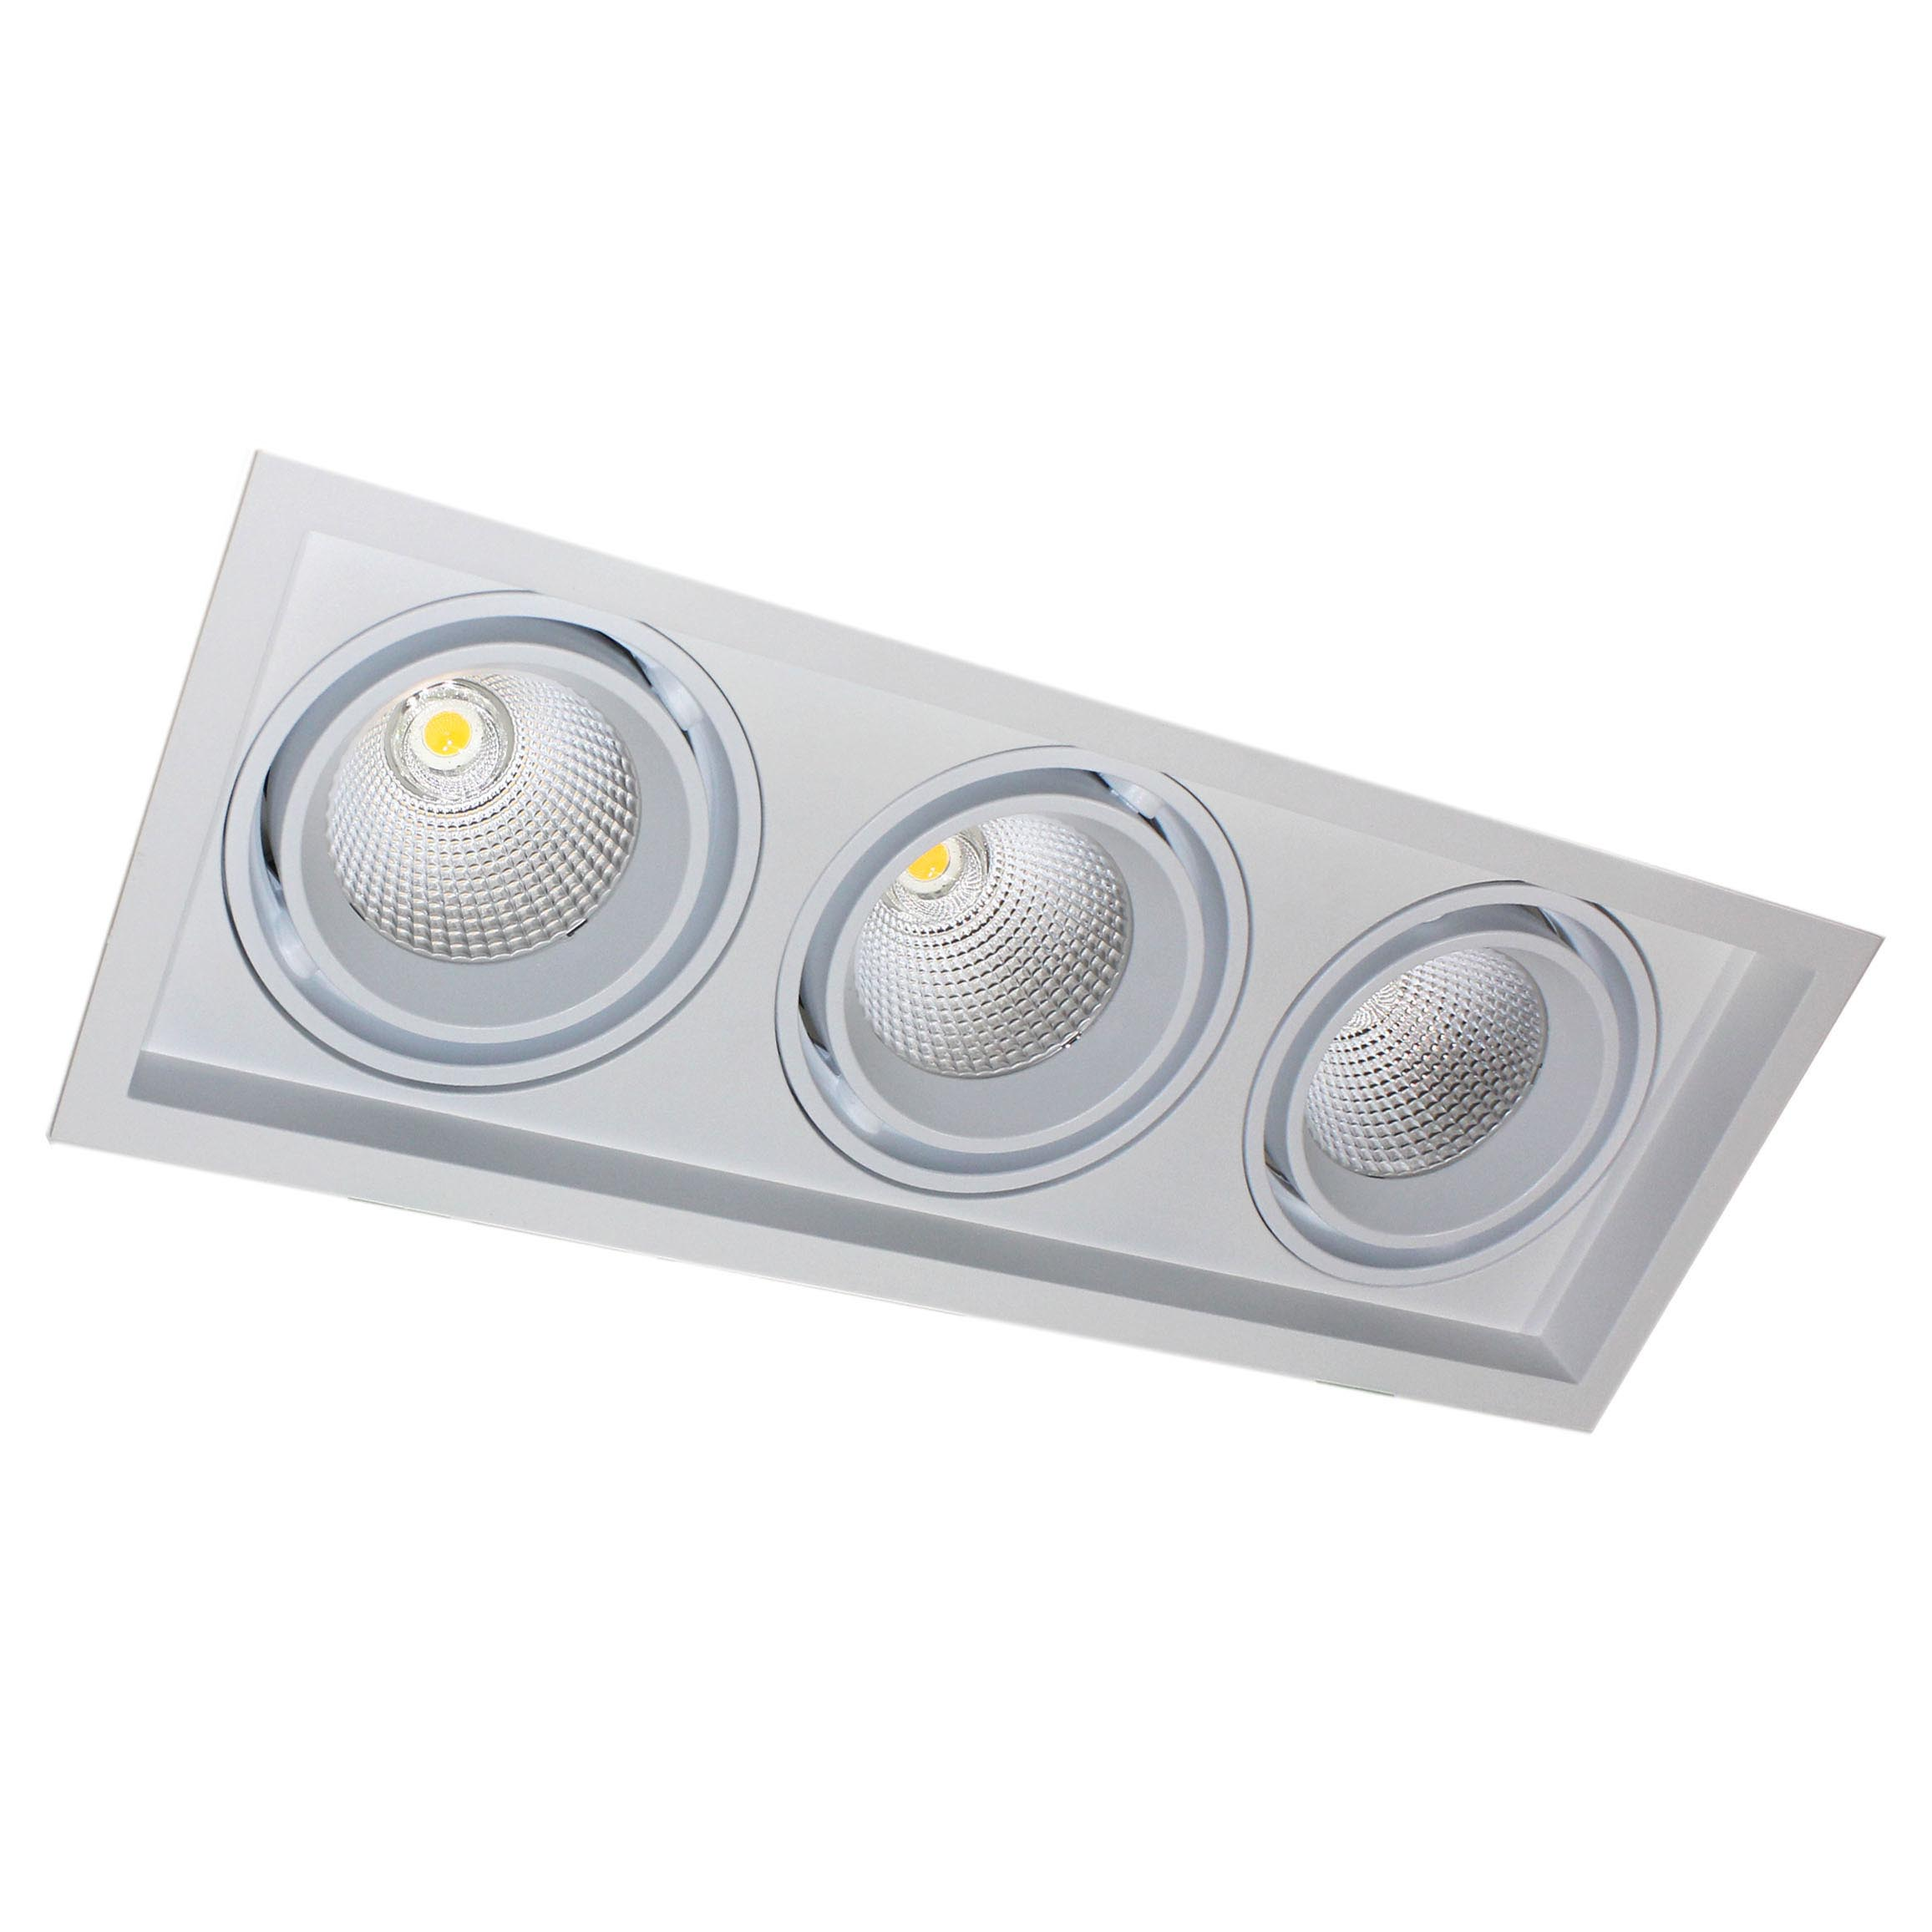 Downlight Led, KARDAN, 3 focos, 90W